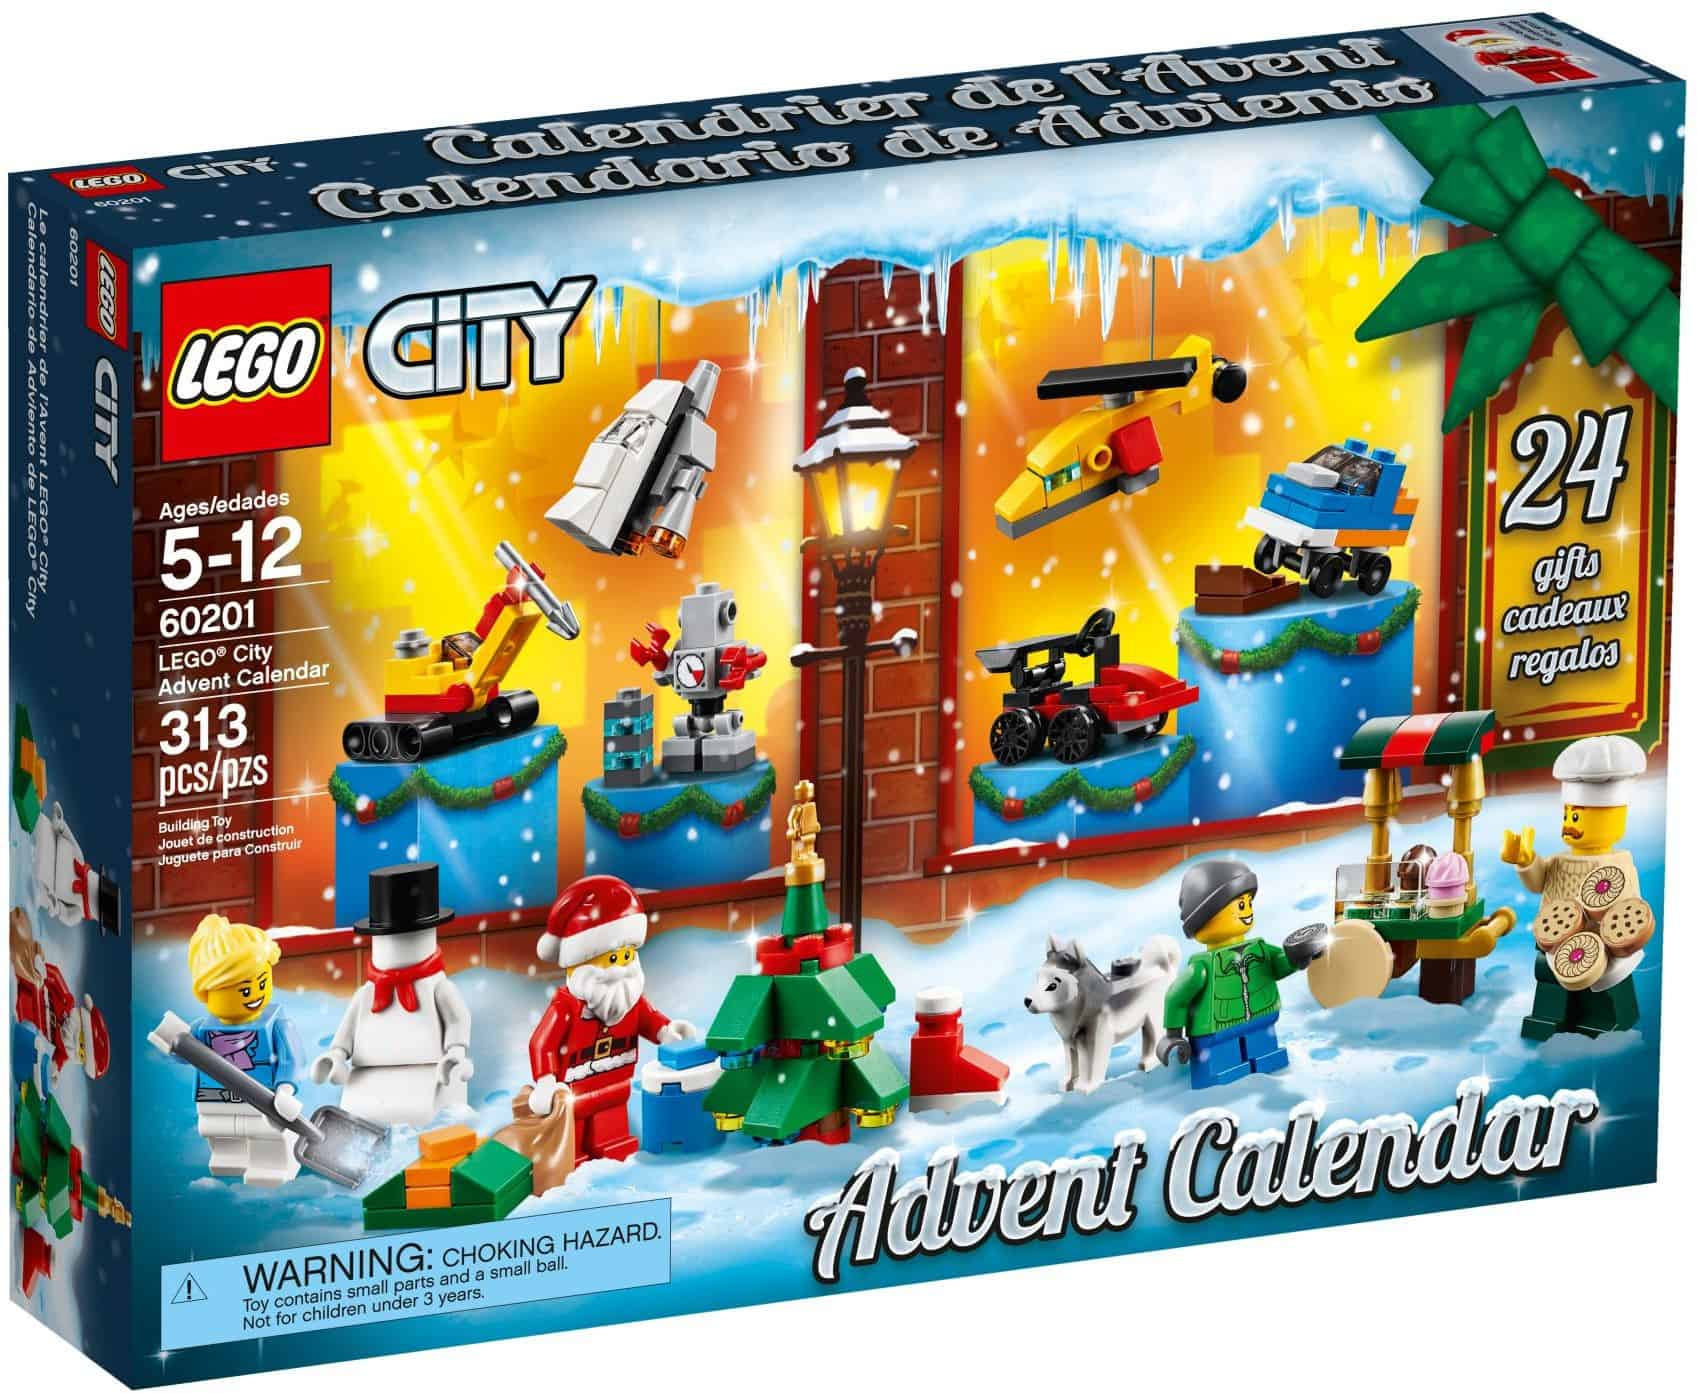 Toy Advent Calendars 2018 – Ten of the Best!